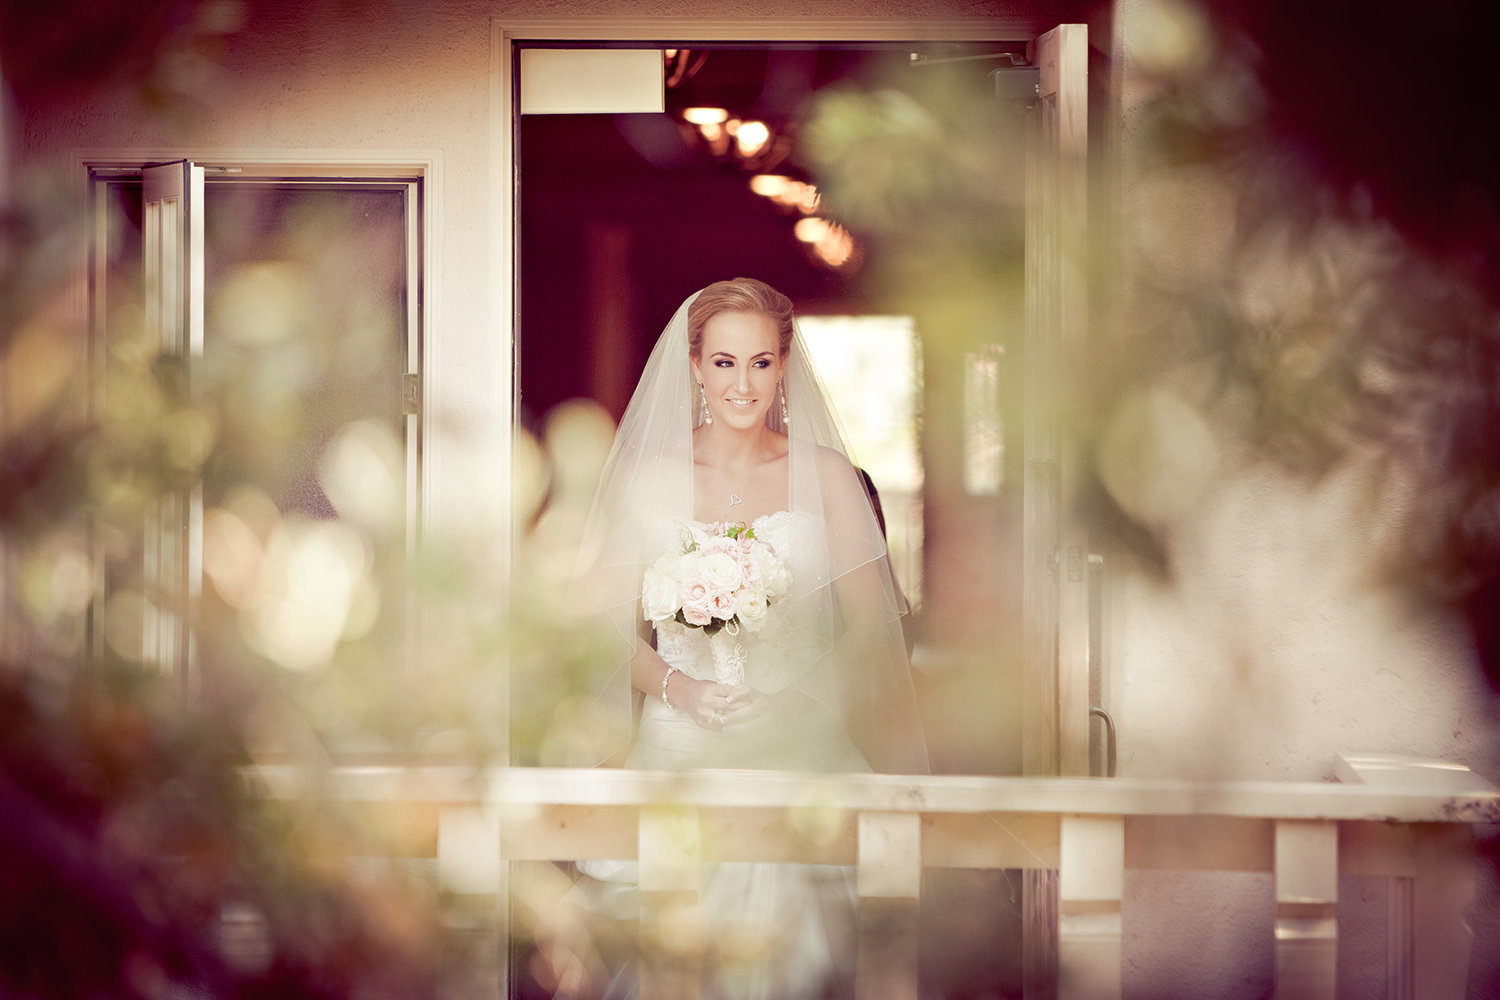 Rustic and candid moment of the bride before the ceremony